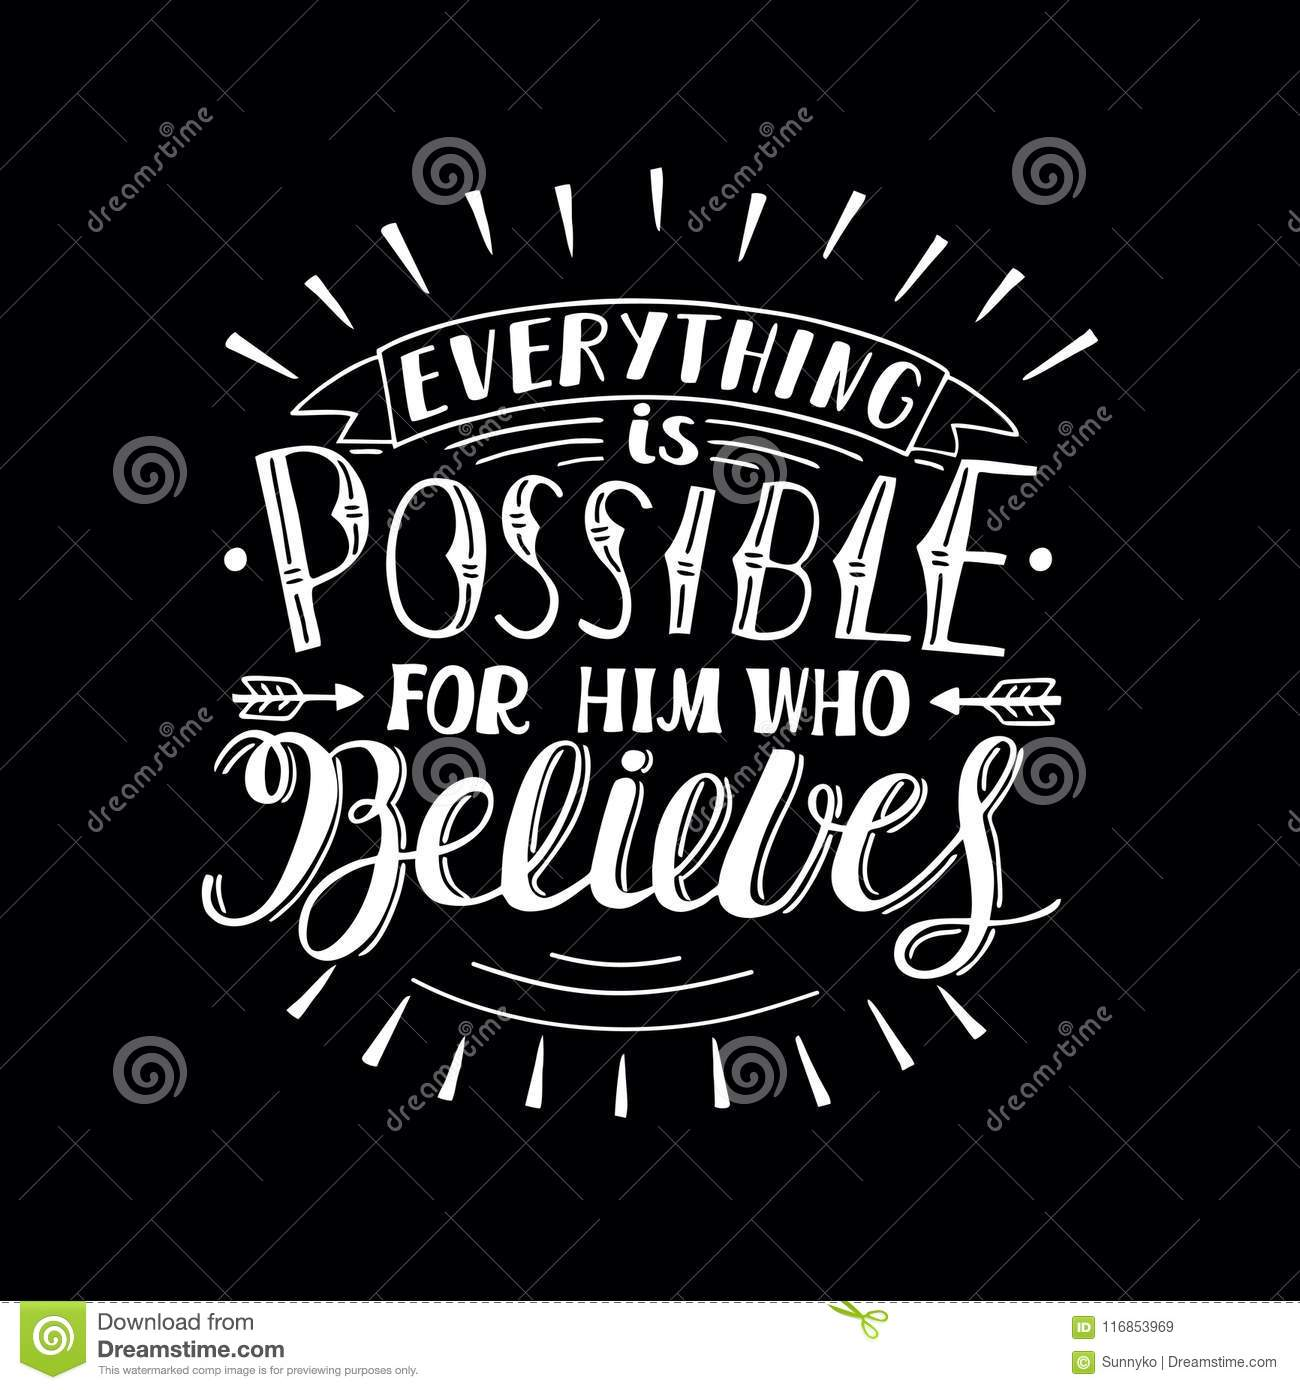 Christian Inspirational Quotes Black Background: Hand Lettering With Bible Verse Everything Is Possible For